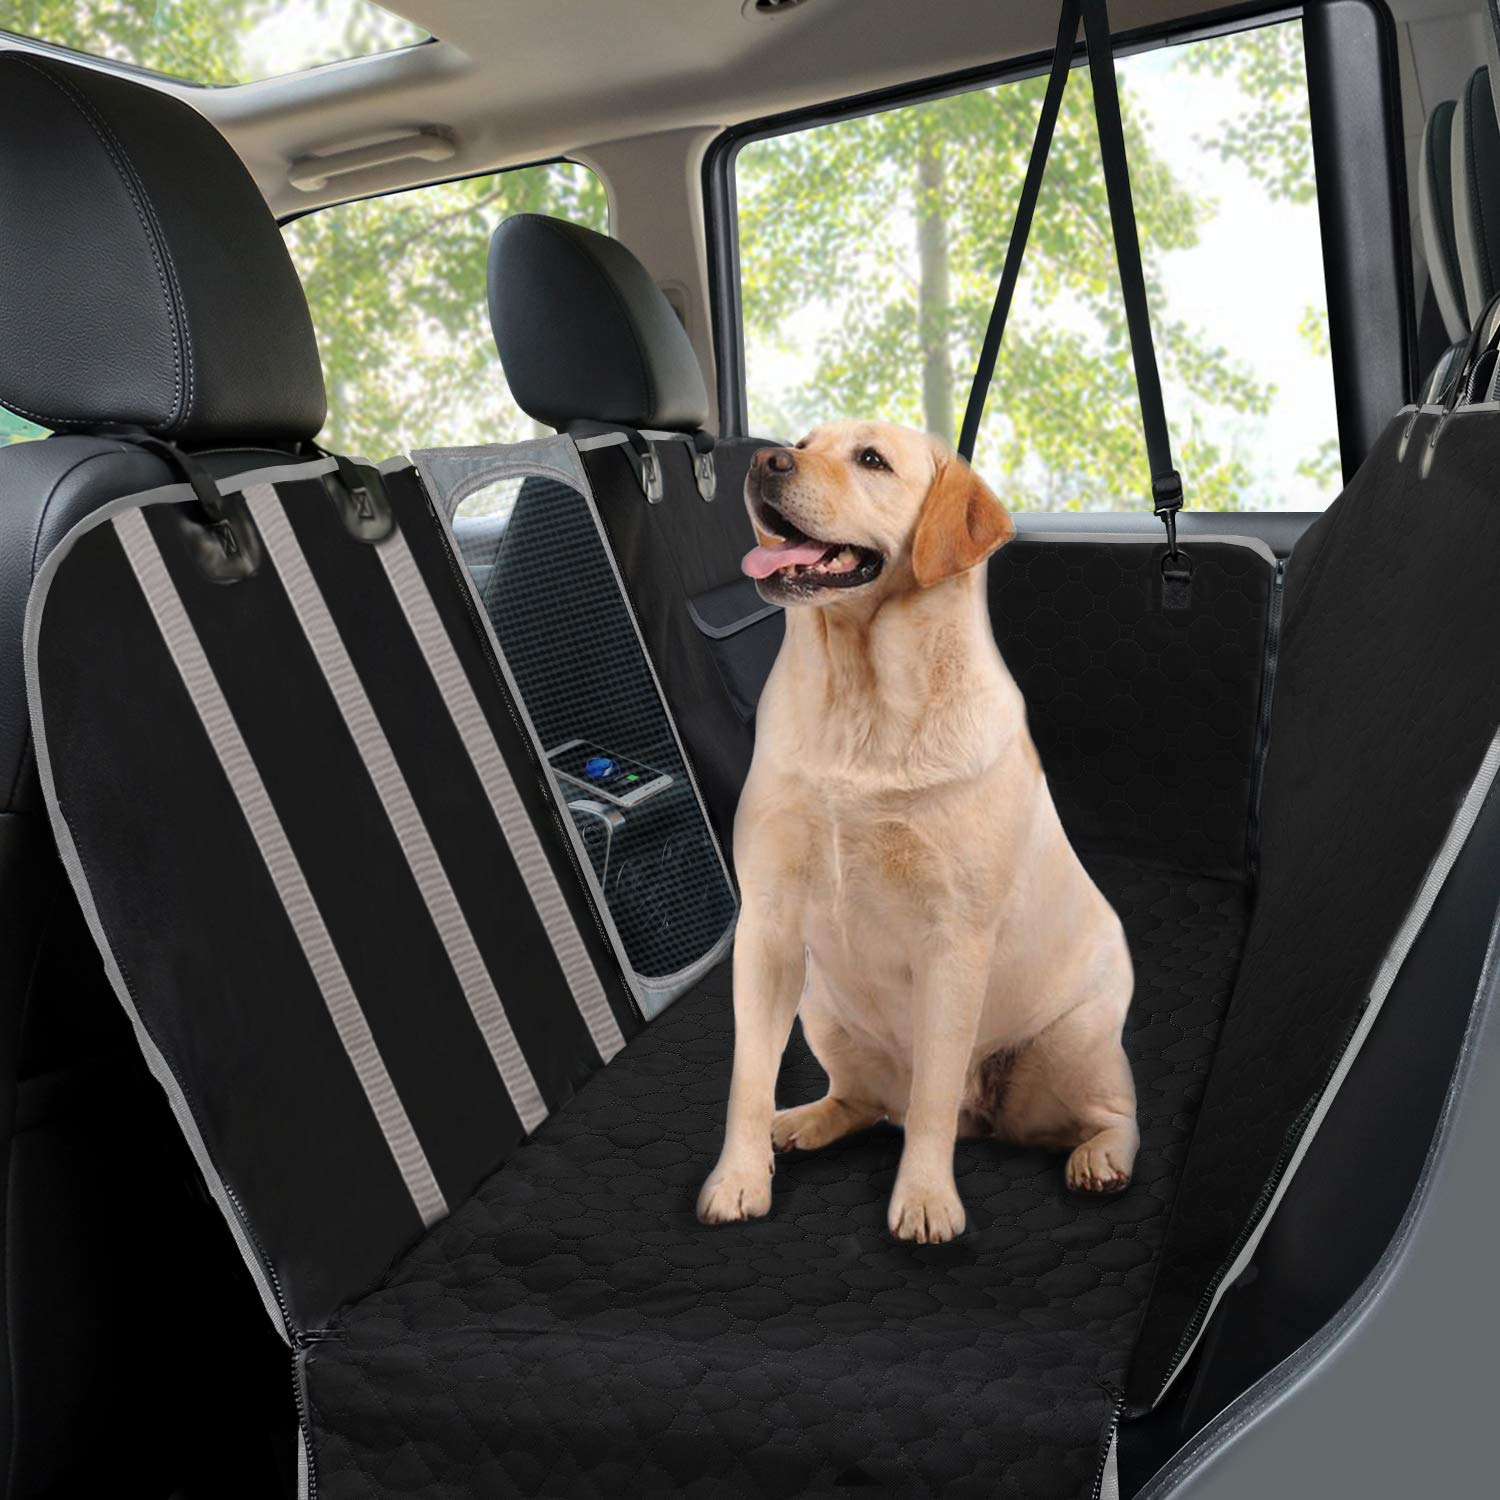 Mancro Dog Car Seat Covers Rear Car Seat Cover For Dogs With Mesh Viewing Window Side Flaps Dog Hammock Waterproof Heavy Duty Non Slip Pet Seat